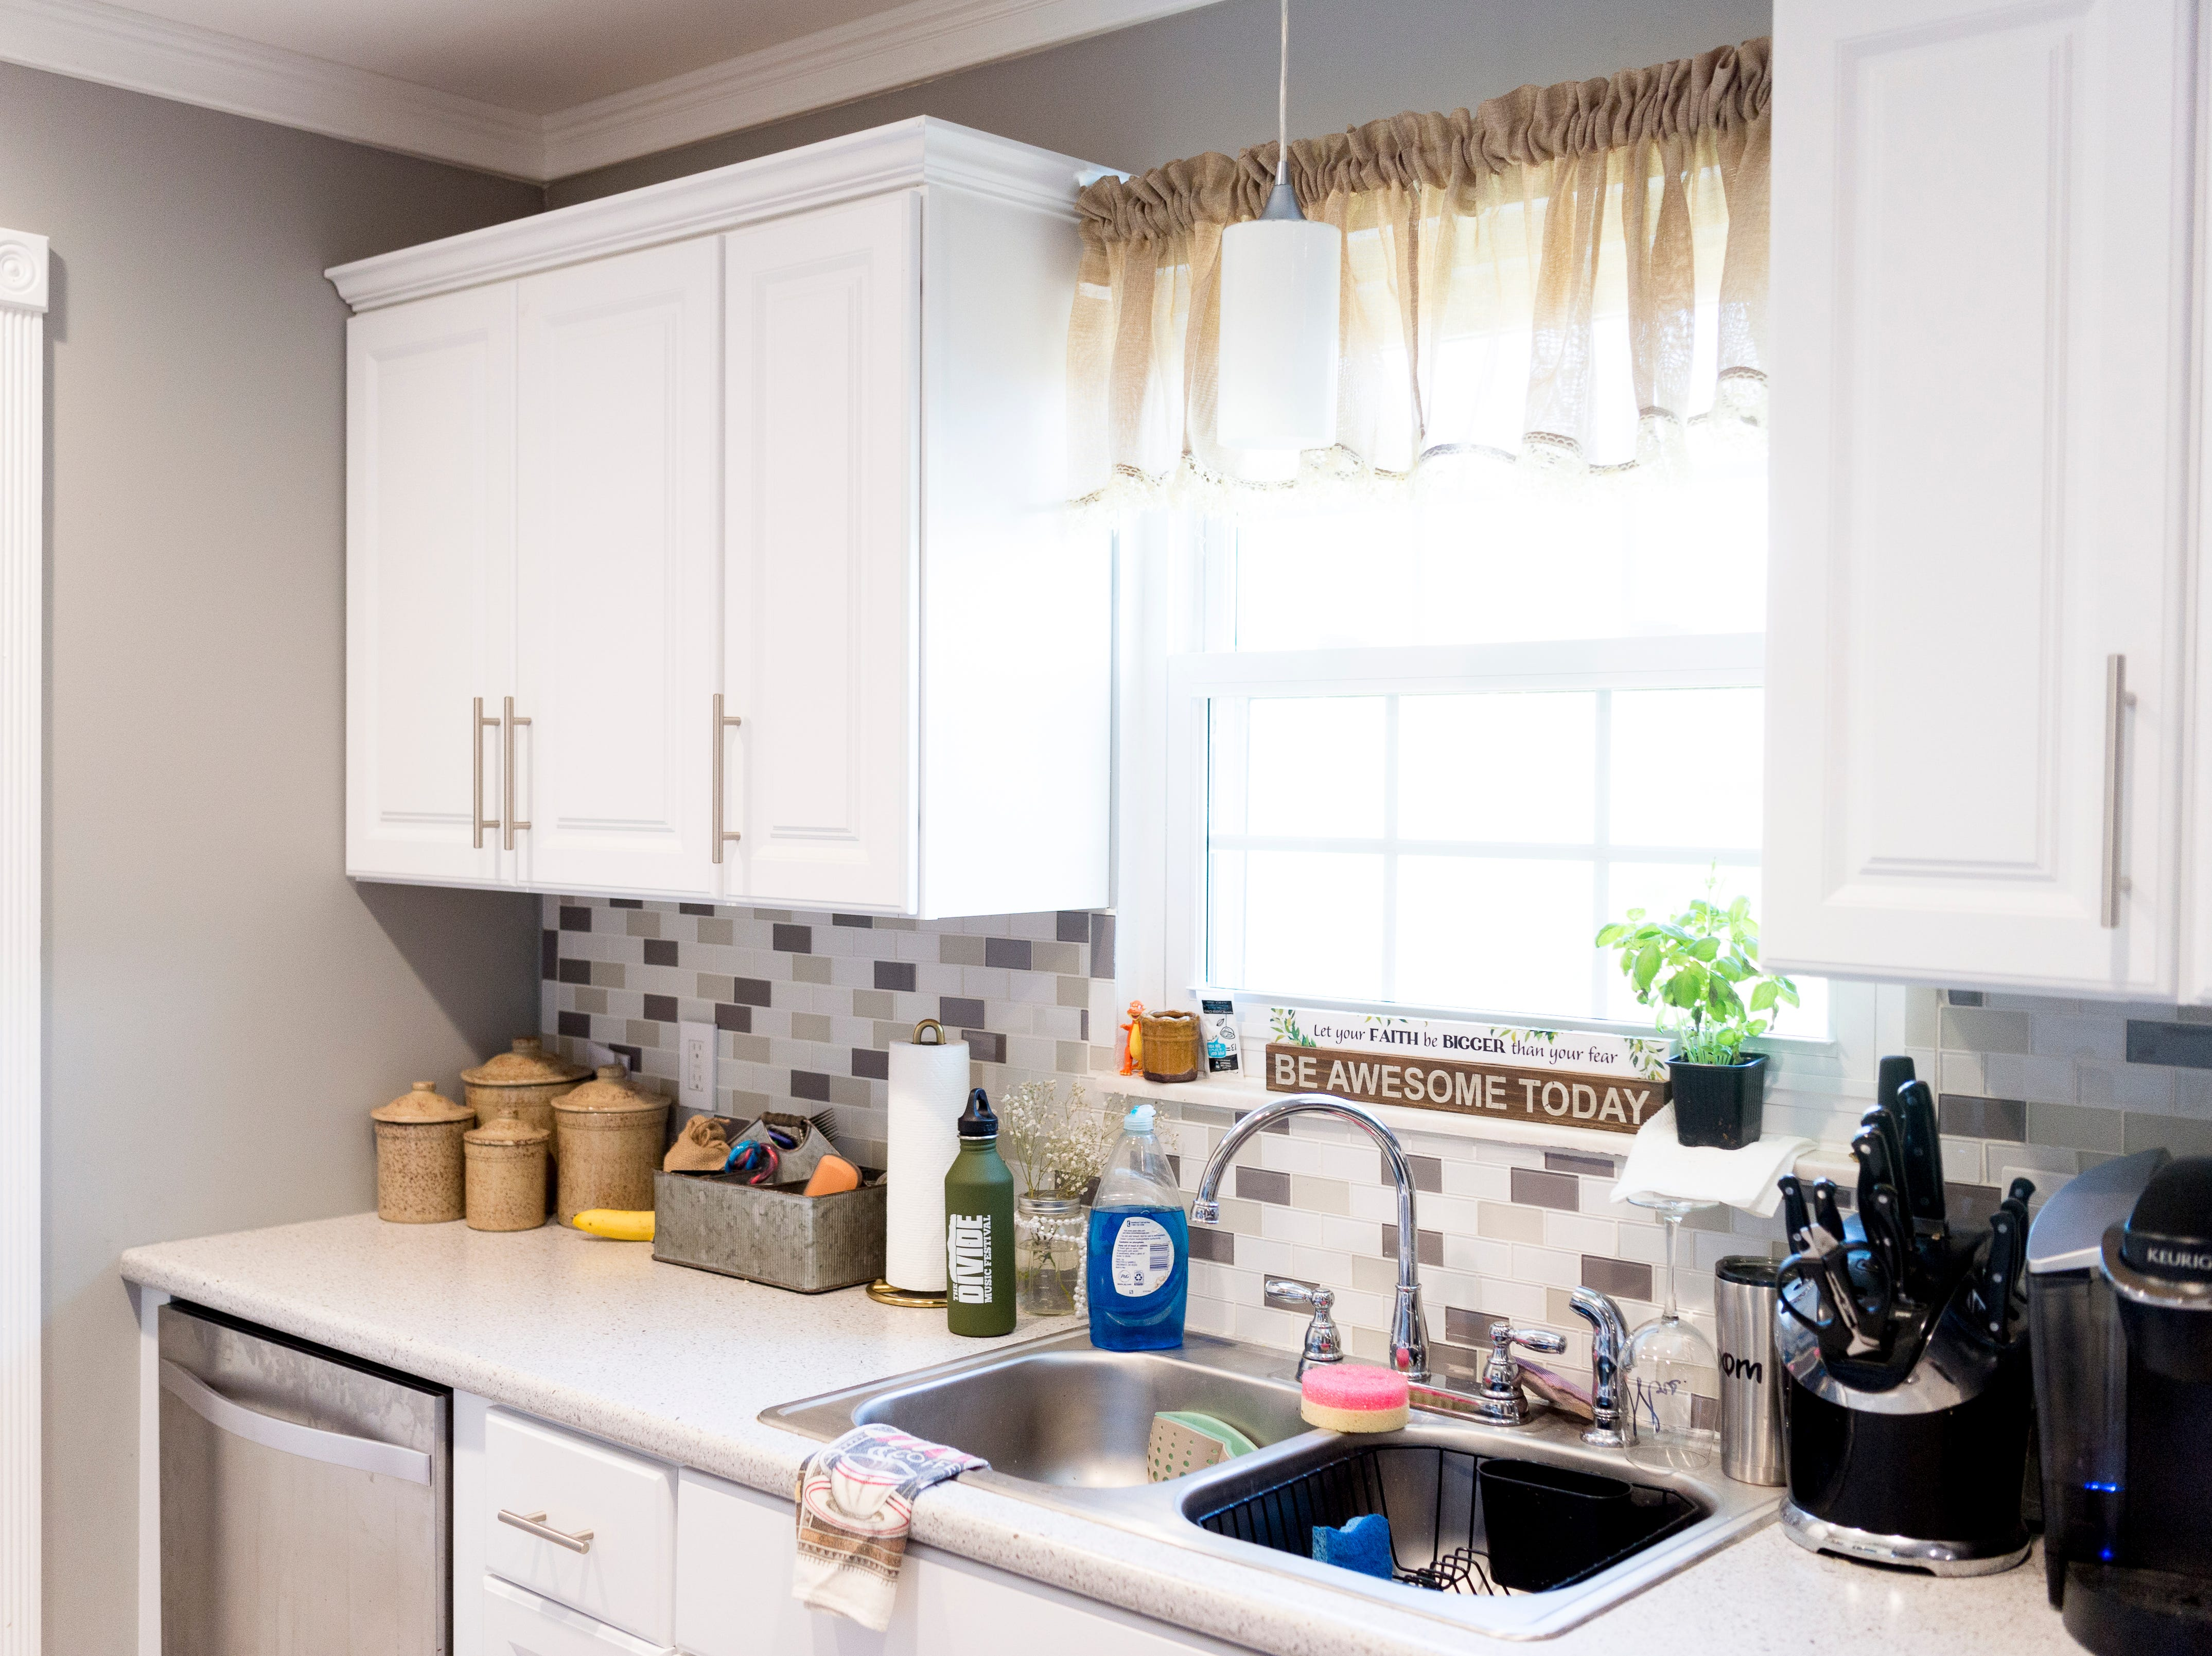 The kitchen of Miller and Gurney's home off McKamey Road west of Knoxville, Tennessee on Wednesday, April 3, 2019. After months of house searching, the couple decided to move into their current home last December after making some small compromises like being further away from downtown.